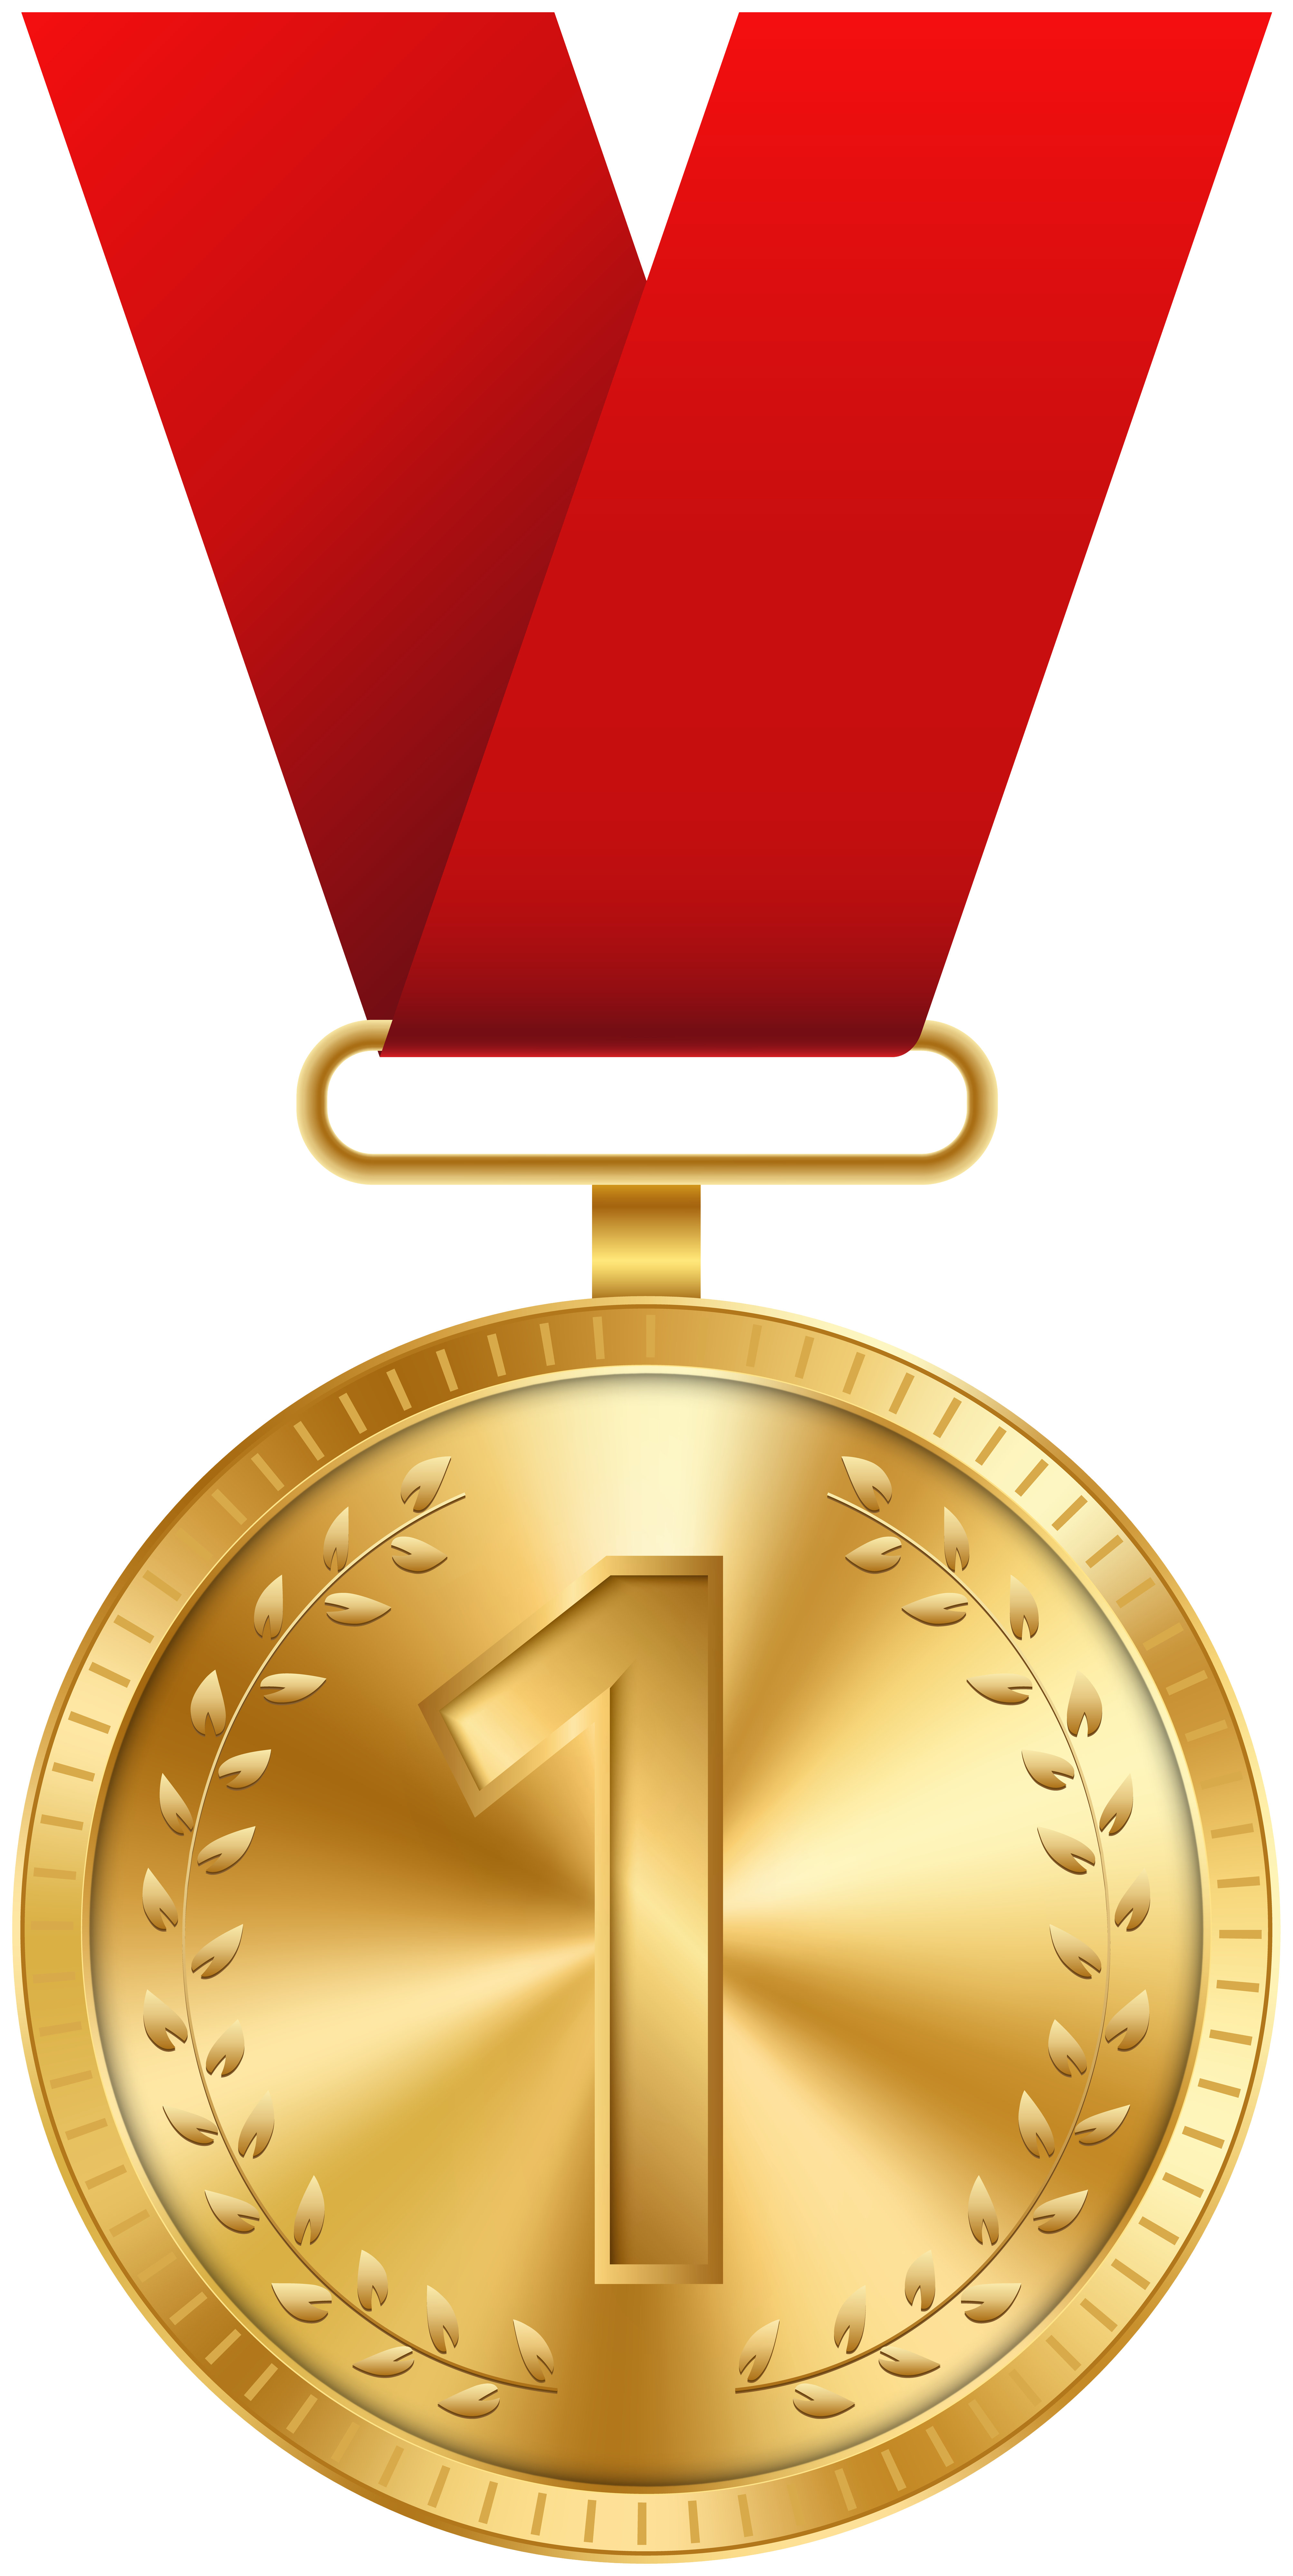 Gold Medal PNG Clip Art Image | Gallery Yopriceville - High-Quality ... clip art free download